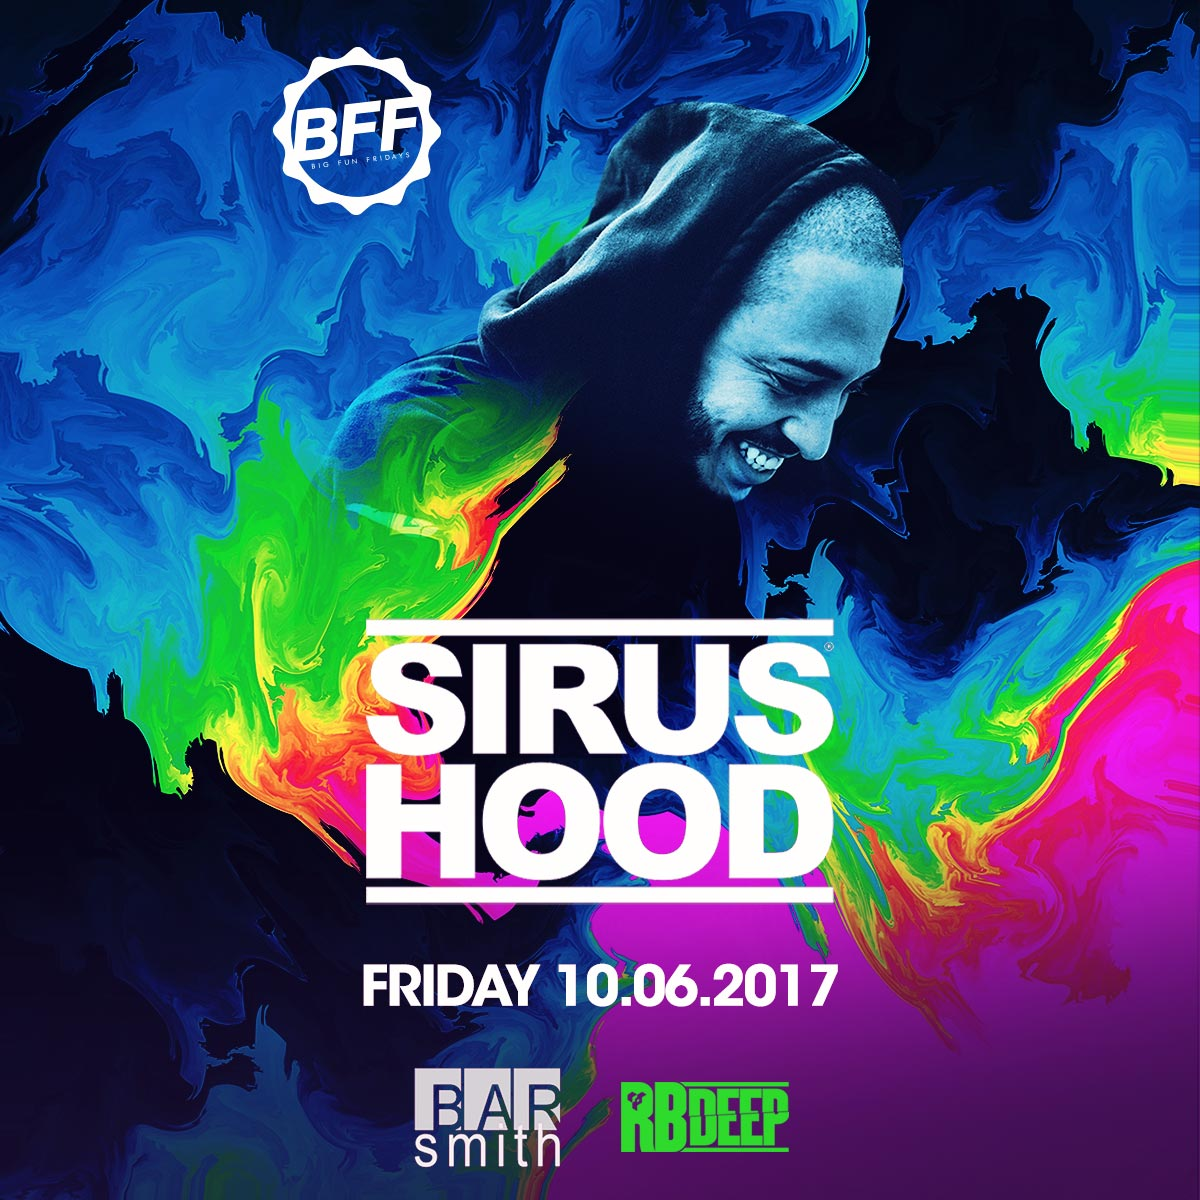 Flyer for Sirus Hood at BFF